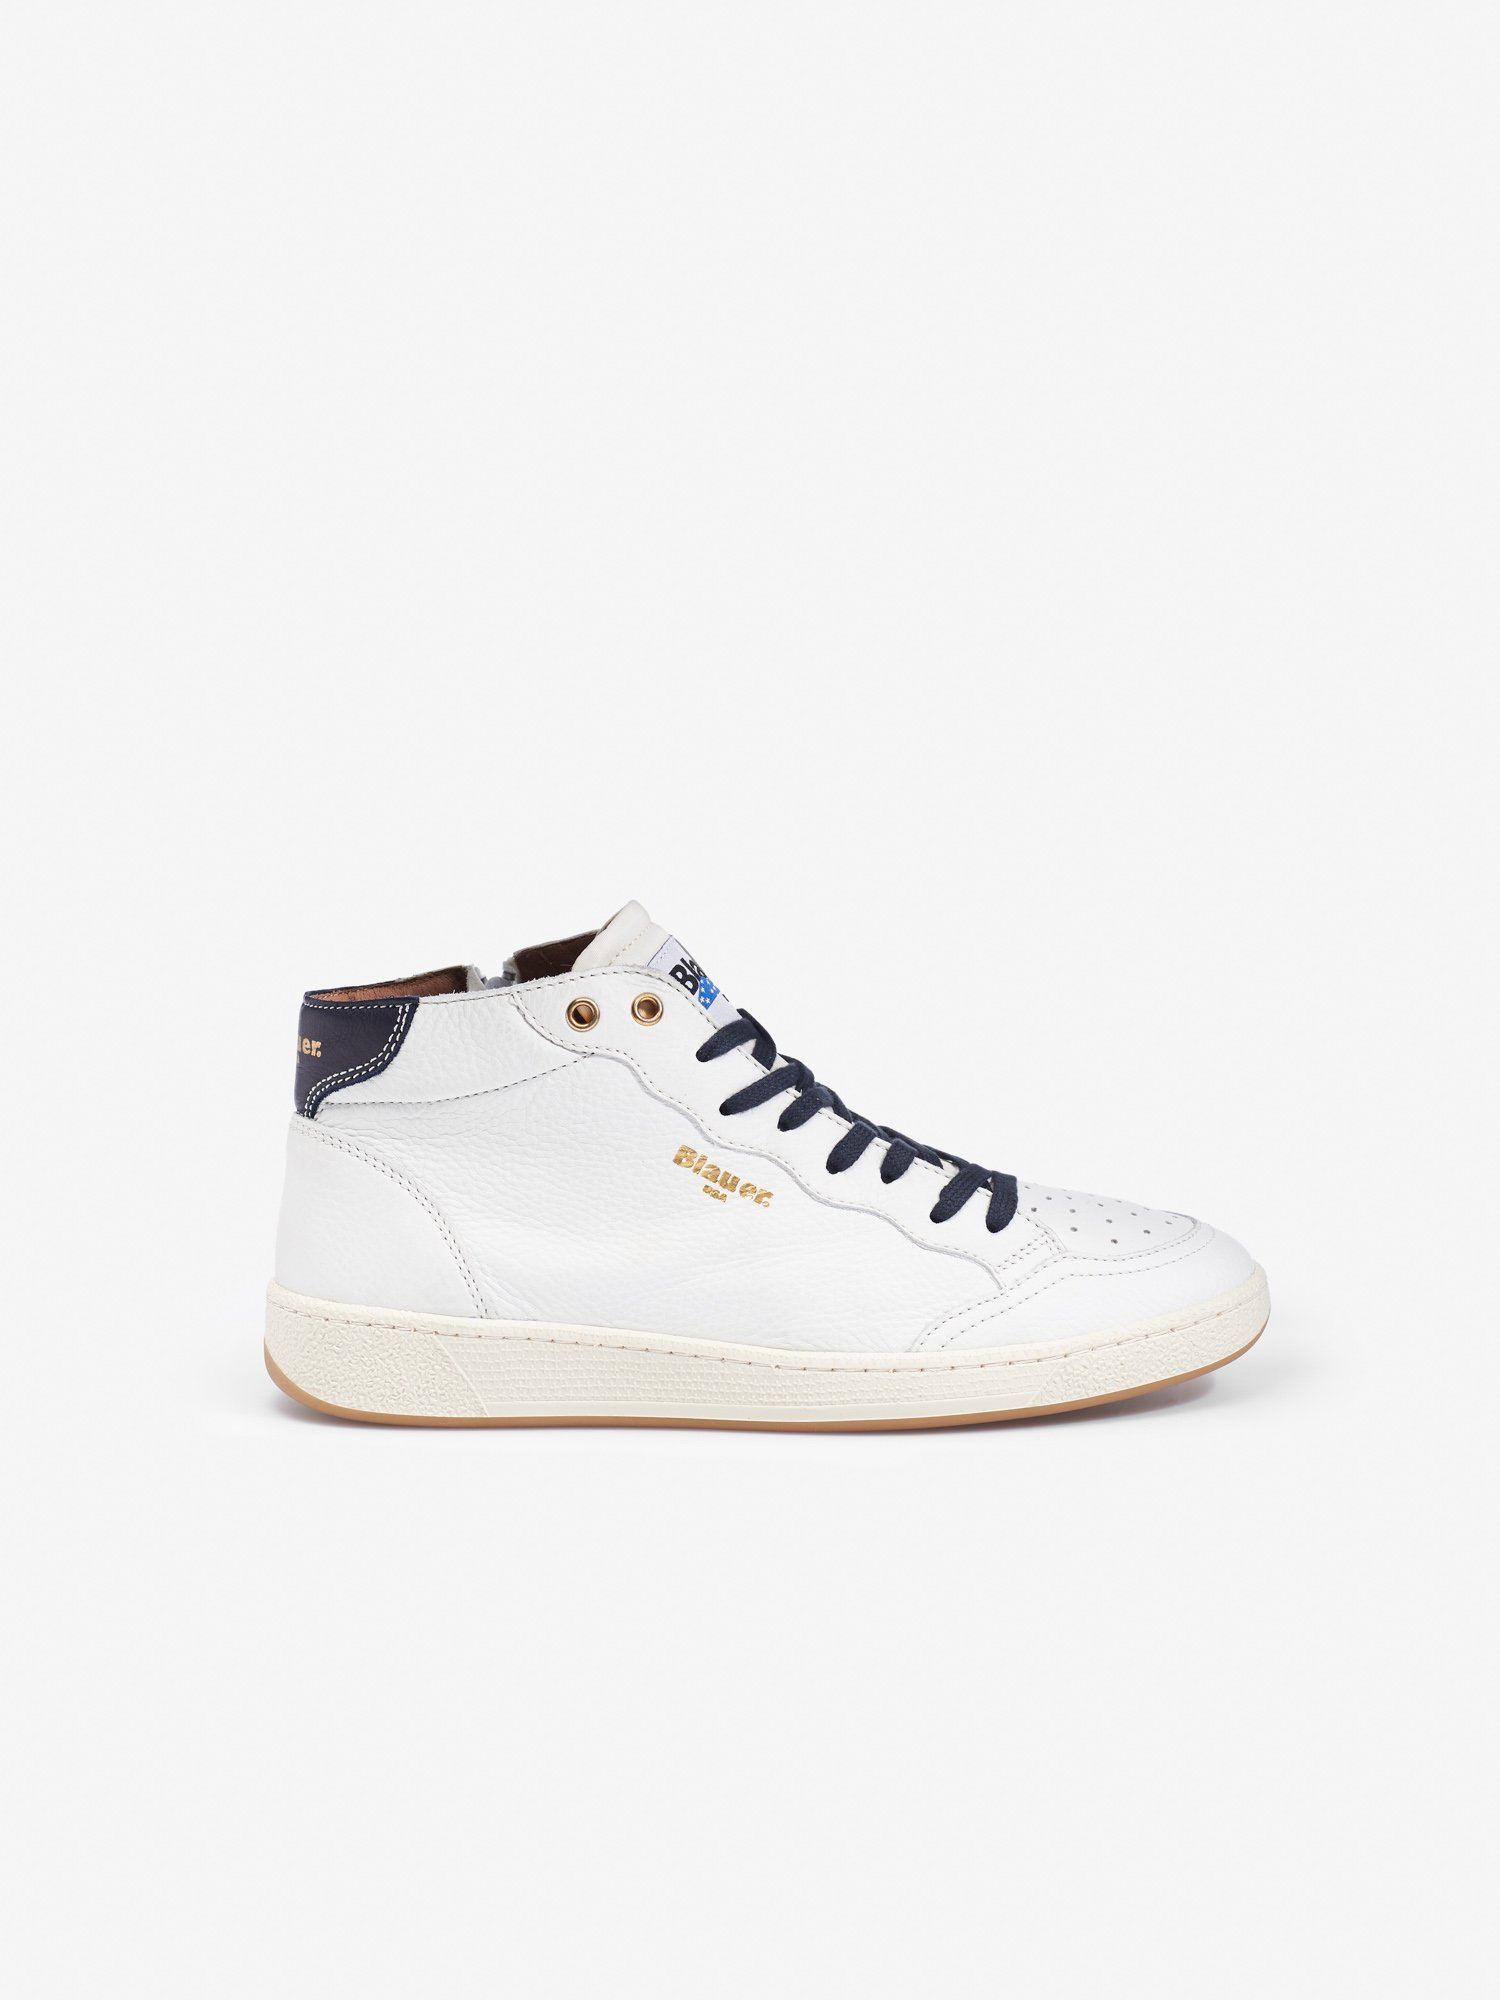 Blauer - MURRAY HIGH-TOP TRAINERS - white - Blauer